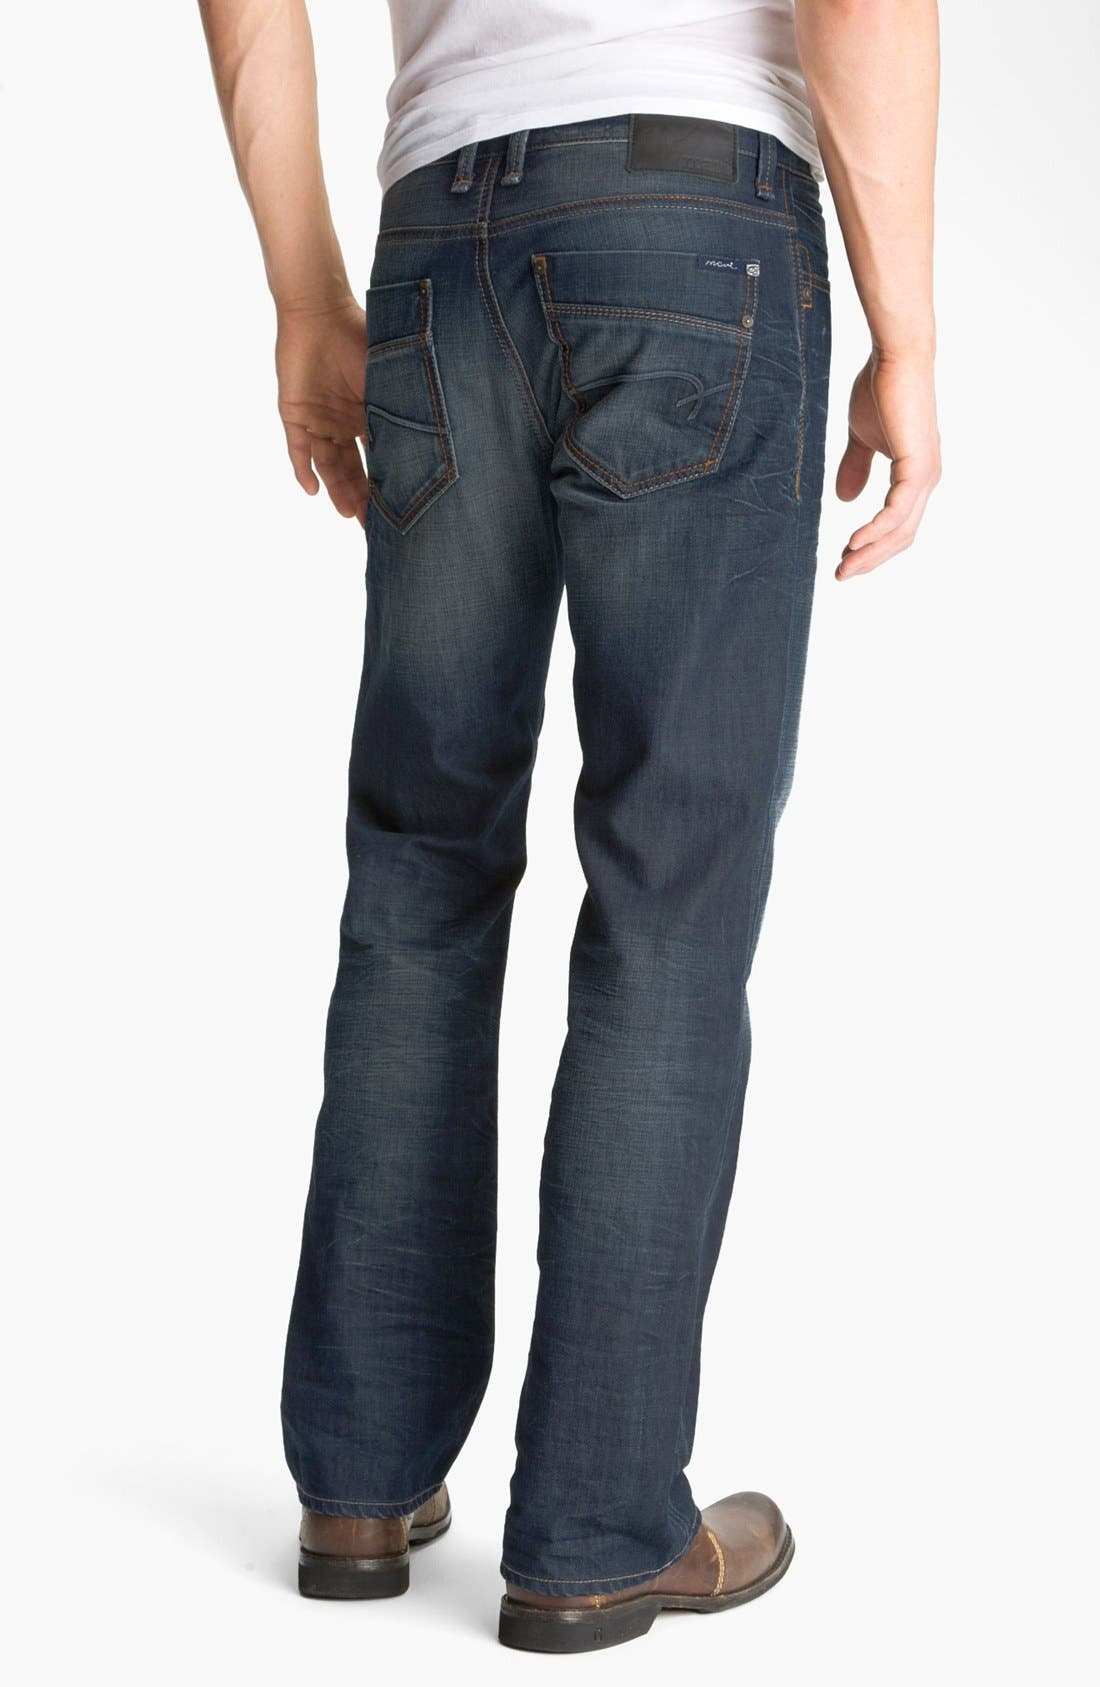 Alternate Image 1 Selected - Mavi Jeans 'Josh' Bootcut Jeans (Coated Jameson) (Online Only)